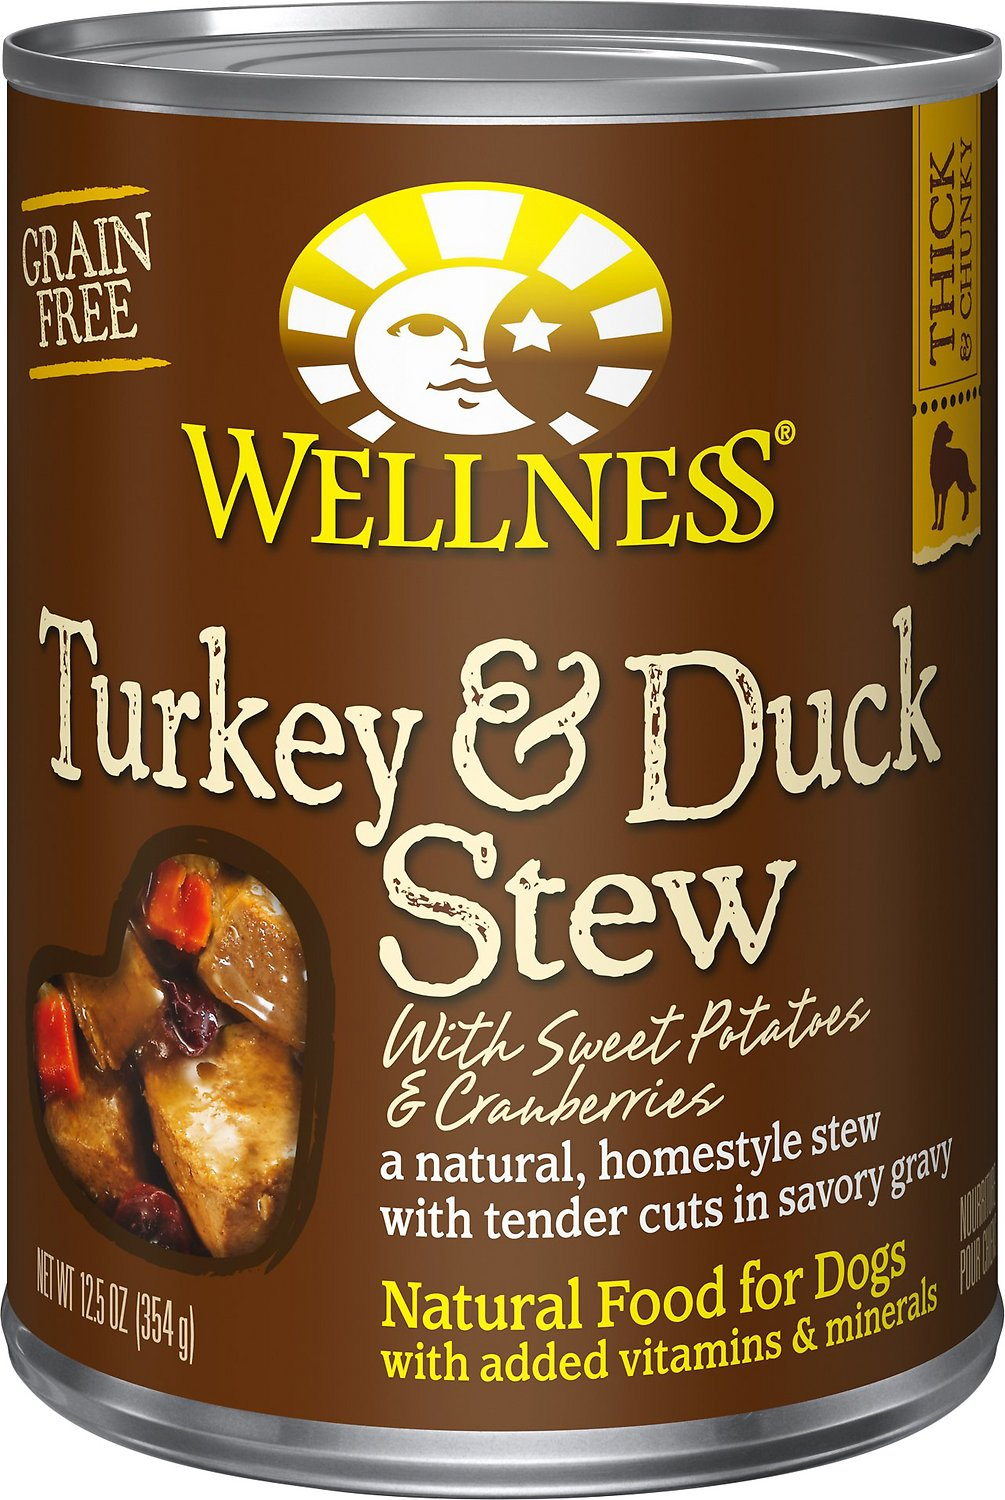 Wellness Turkey & Duck Stew with Sweet Potatoes & Cranberries Canned Dog Food, 12.5-oz